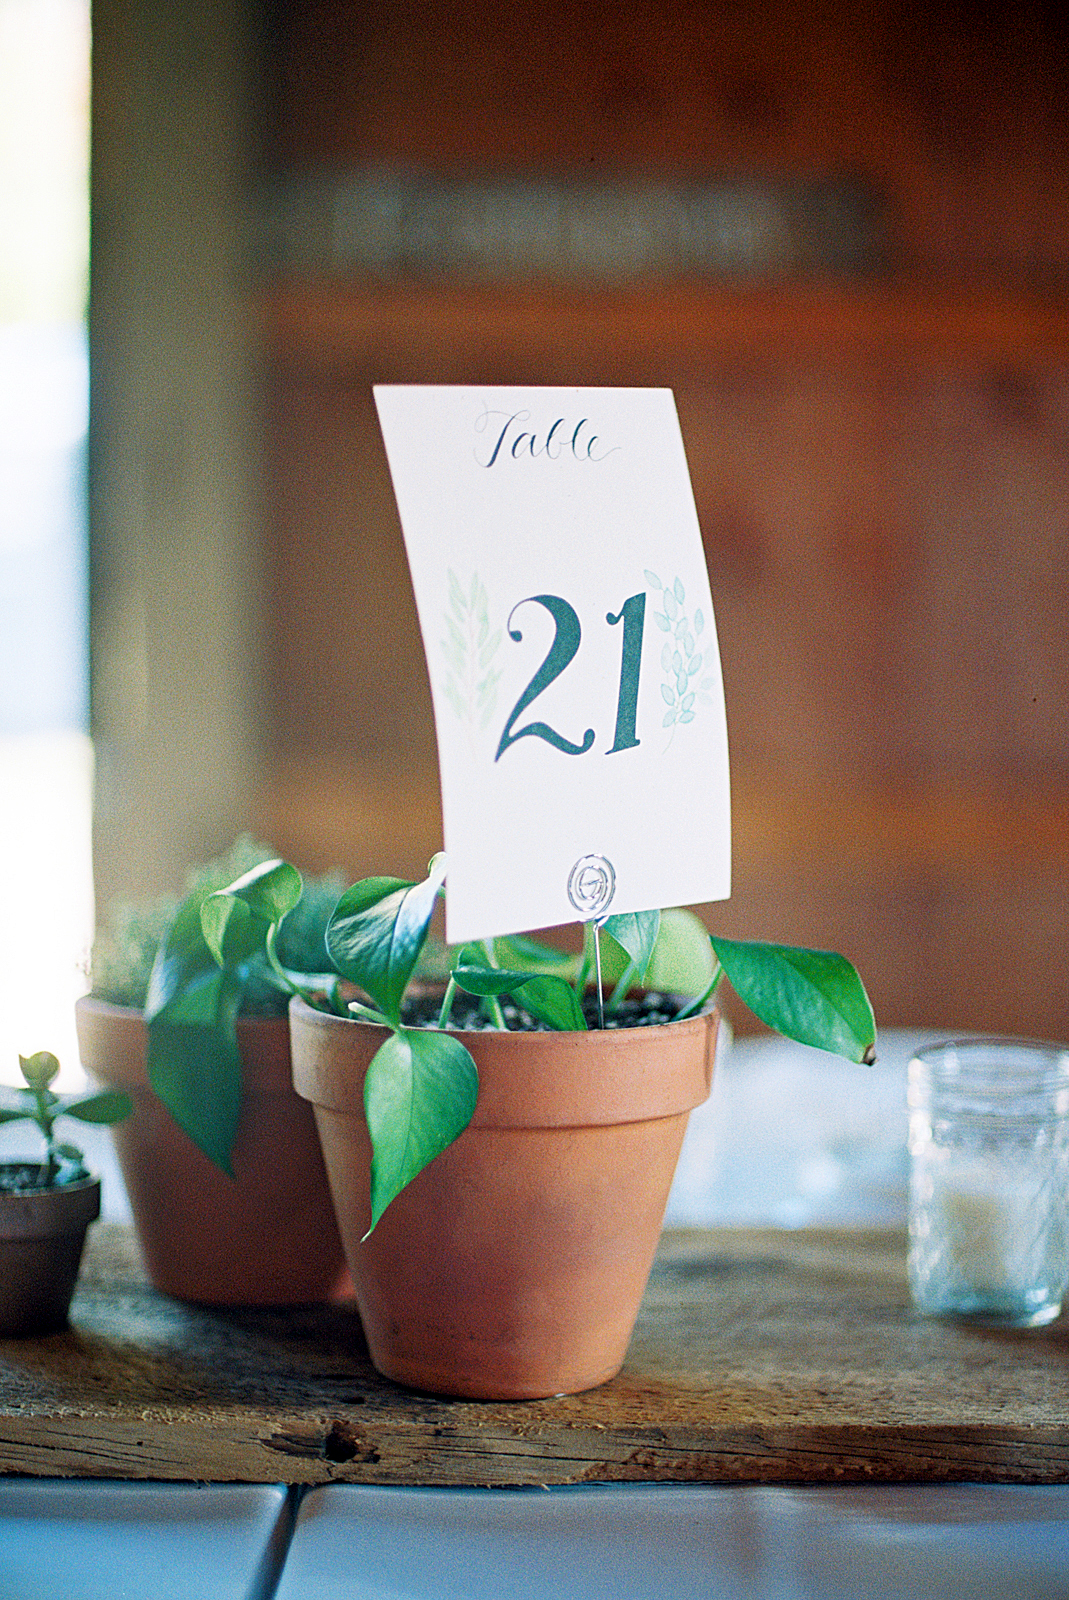 rachel elijah wedding table number